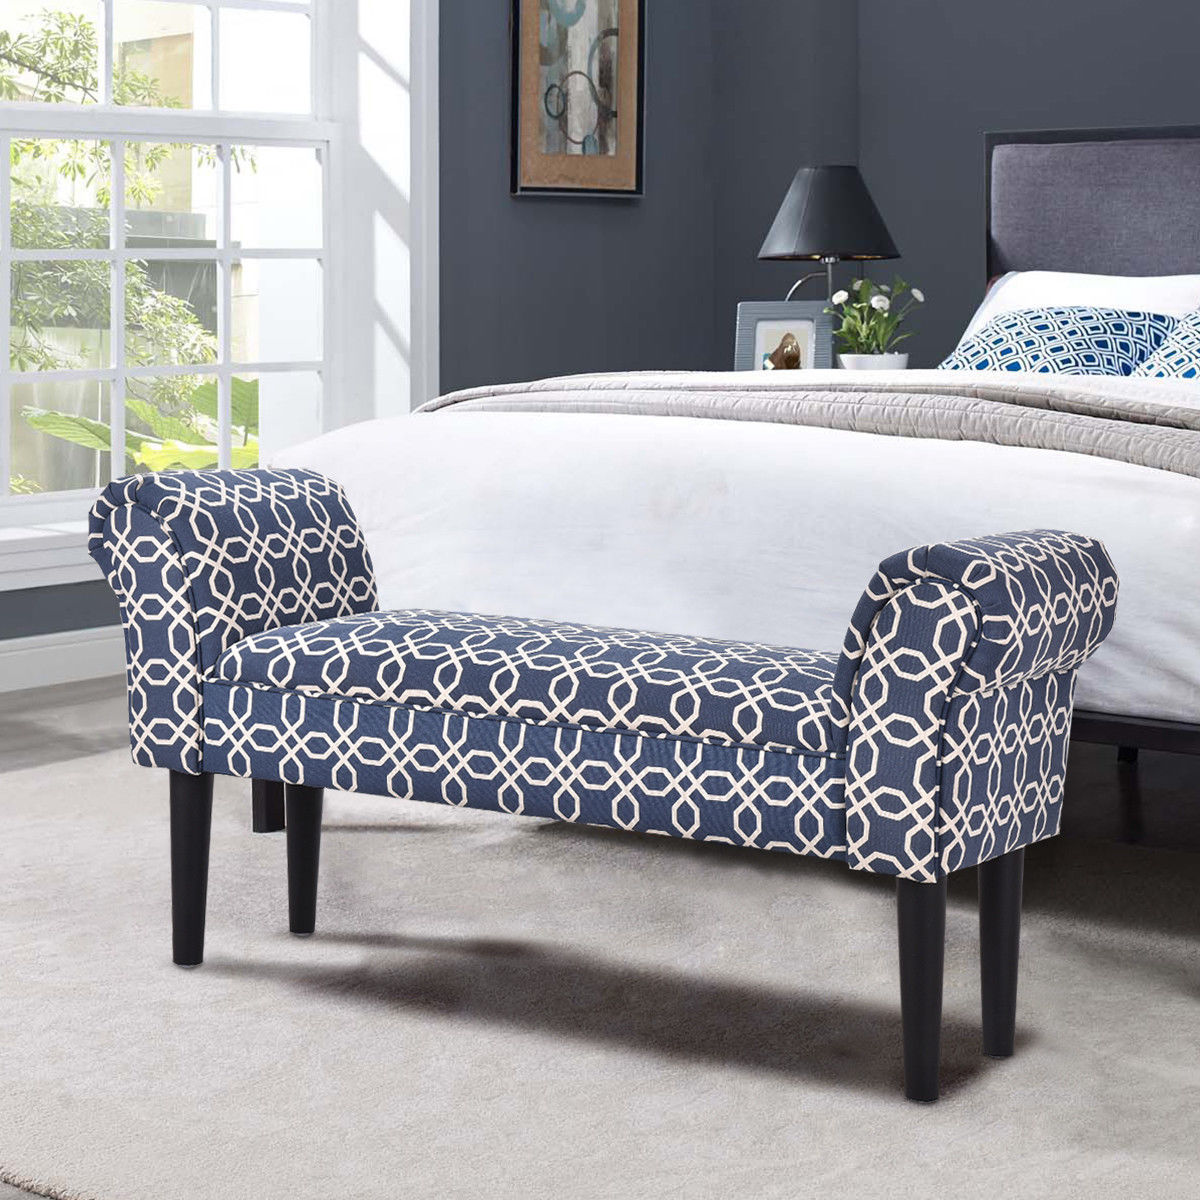 Costway Upholstered Armed Bed Benches For  Entryway, Hallway,Bed End Bench Chair